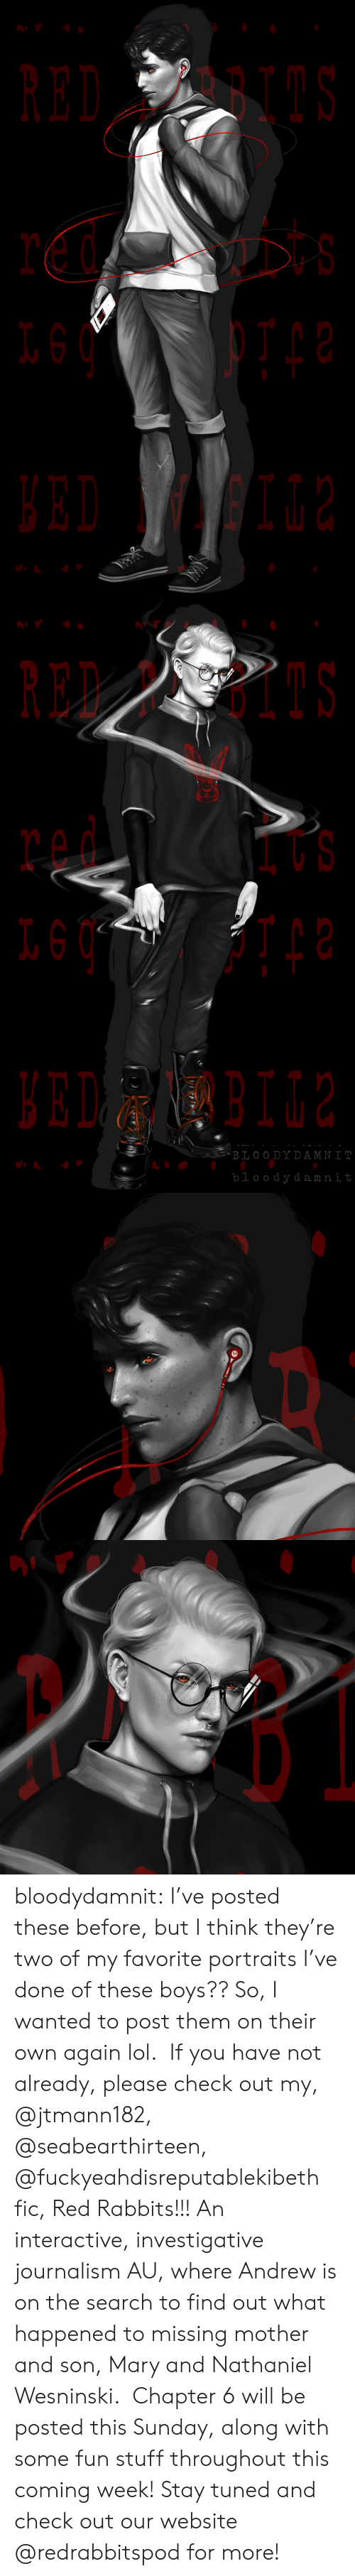 Lol, Target, and Tumblr: RED BI  t s   RED PBIIS  BLOO DYDAMNI  bloody damnit bloodydamnit: I've posted these before, but I think they're two of my favorite portraits I've done of these boys?? So, I wanted to post them on their own again lol. If you have not already, please check out my, @jtmann182, @seabearthirteen, @fuckyeahdisreputablekibeth fic, Red Rabbits!!! An interactive, investigative journalism AU, where Andrew is on the search to find out what happened to missing mother and son, Mary and Nathaniel Wesninski. Chapter 6 will be posted this Sunday, along with some fun stuff throughout this coming week! Stay tuned and check out our website @redrabbitspod for more!